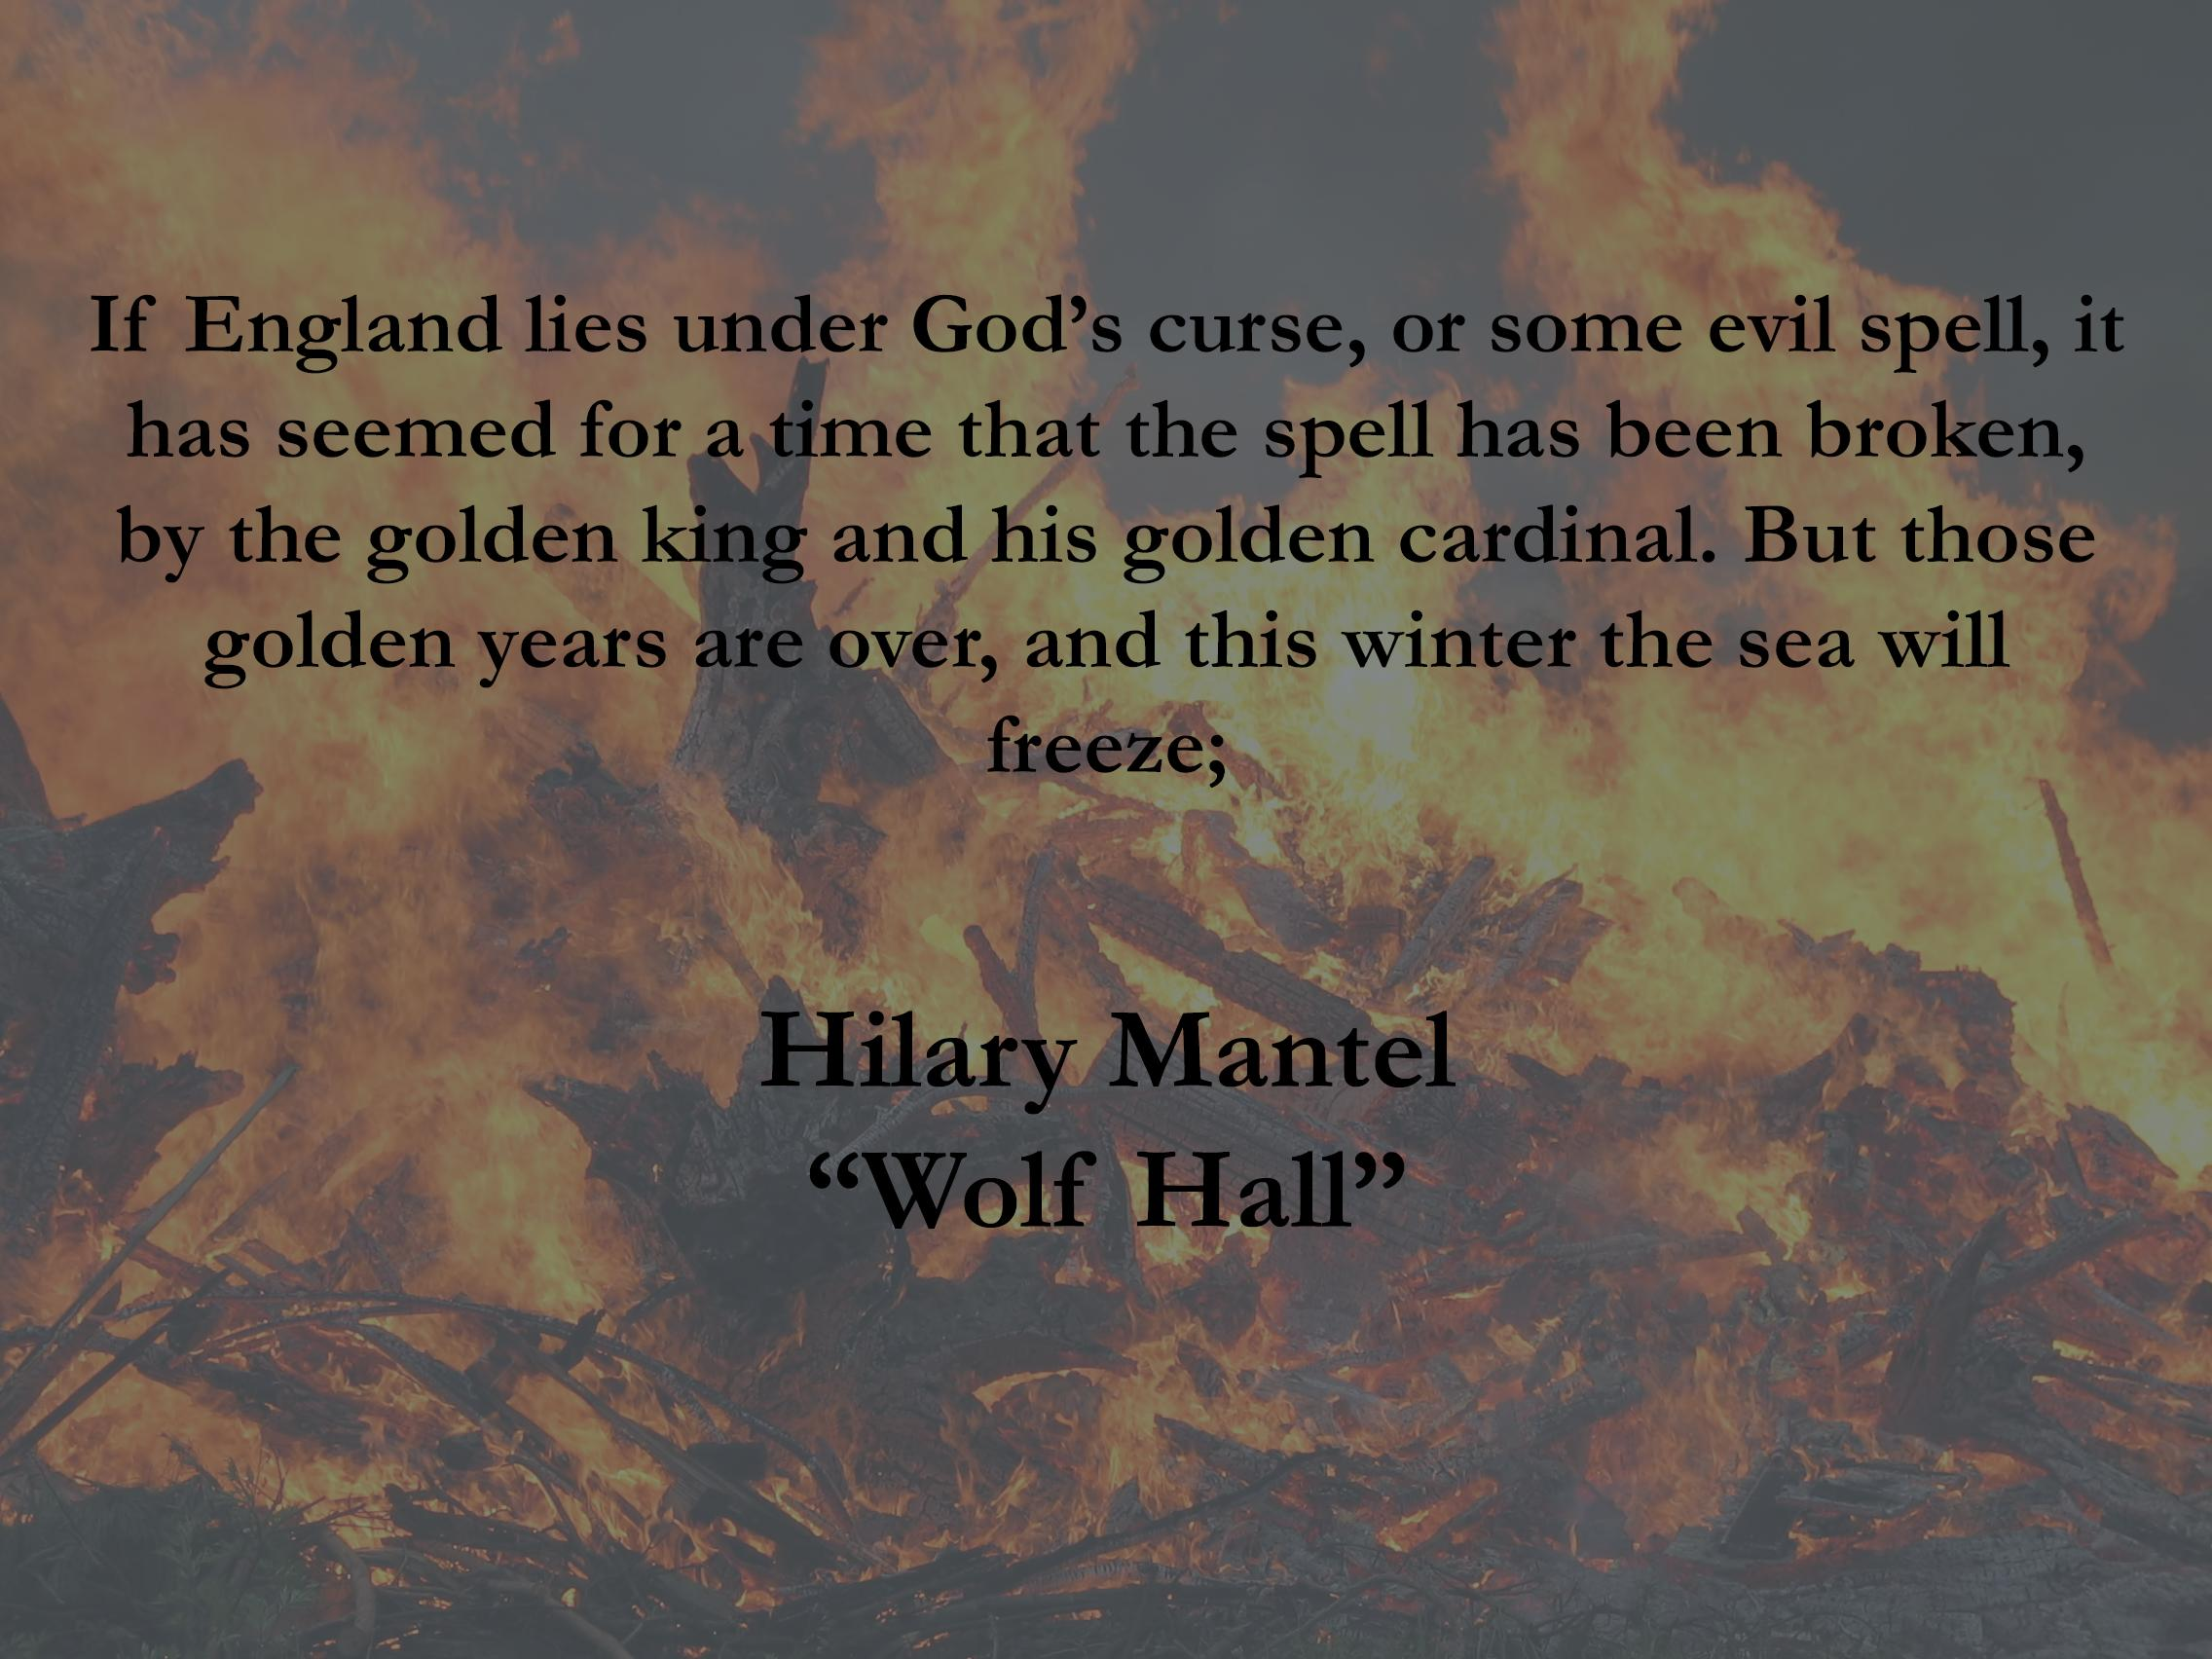 """But those golden years are over…"" From Hilary Mantel's ""Wolf Hall"" [2272×1704]"